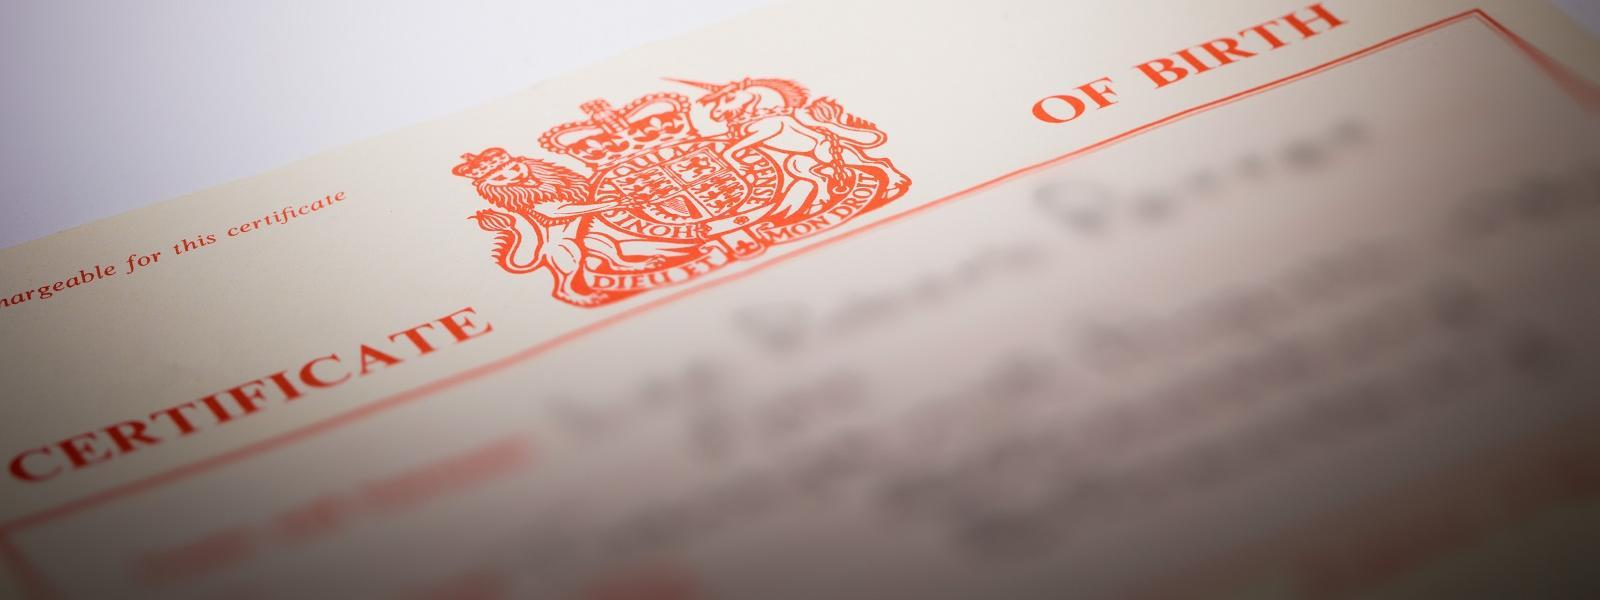 intelligent documents with eTrust - RFID/NFC enabled smart paper featuring instant authentication for secure documents